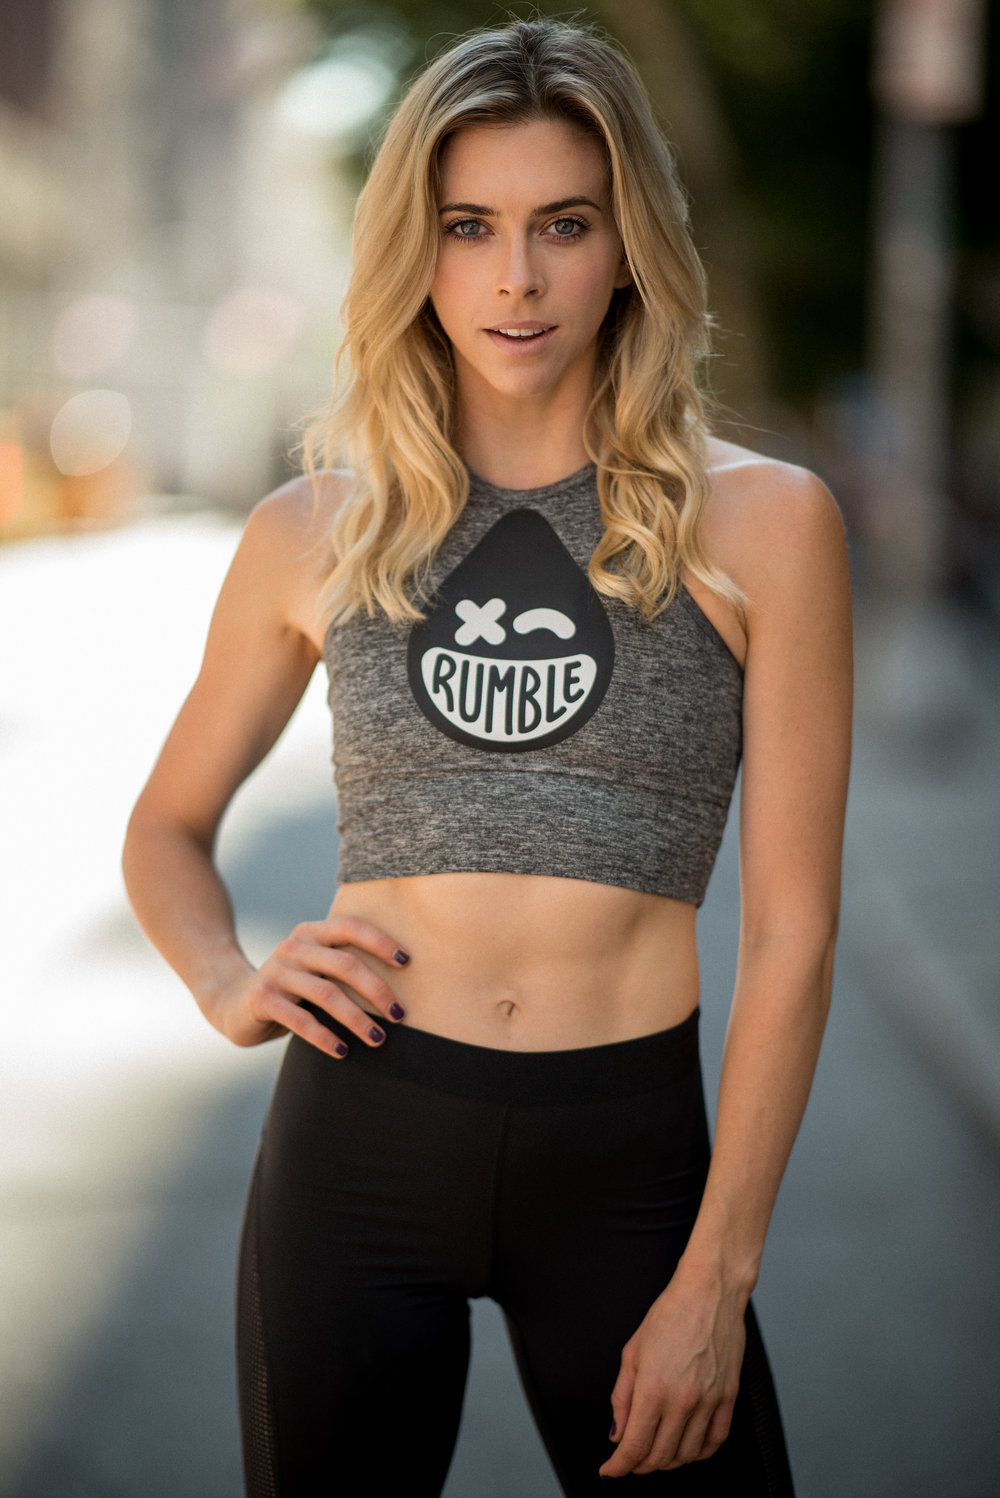 NYC'S HOTTEST TRAINERS | Ashley Wilking, Nike Trainer, Rumble Boxing